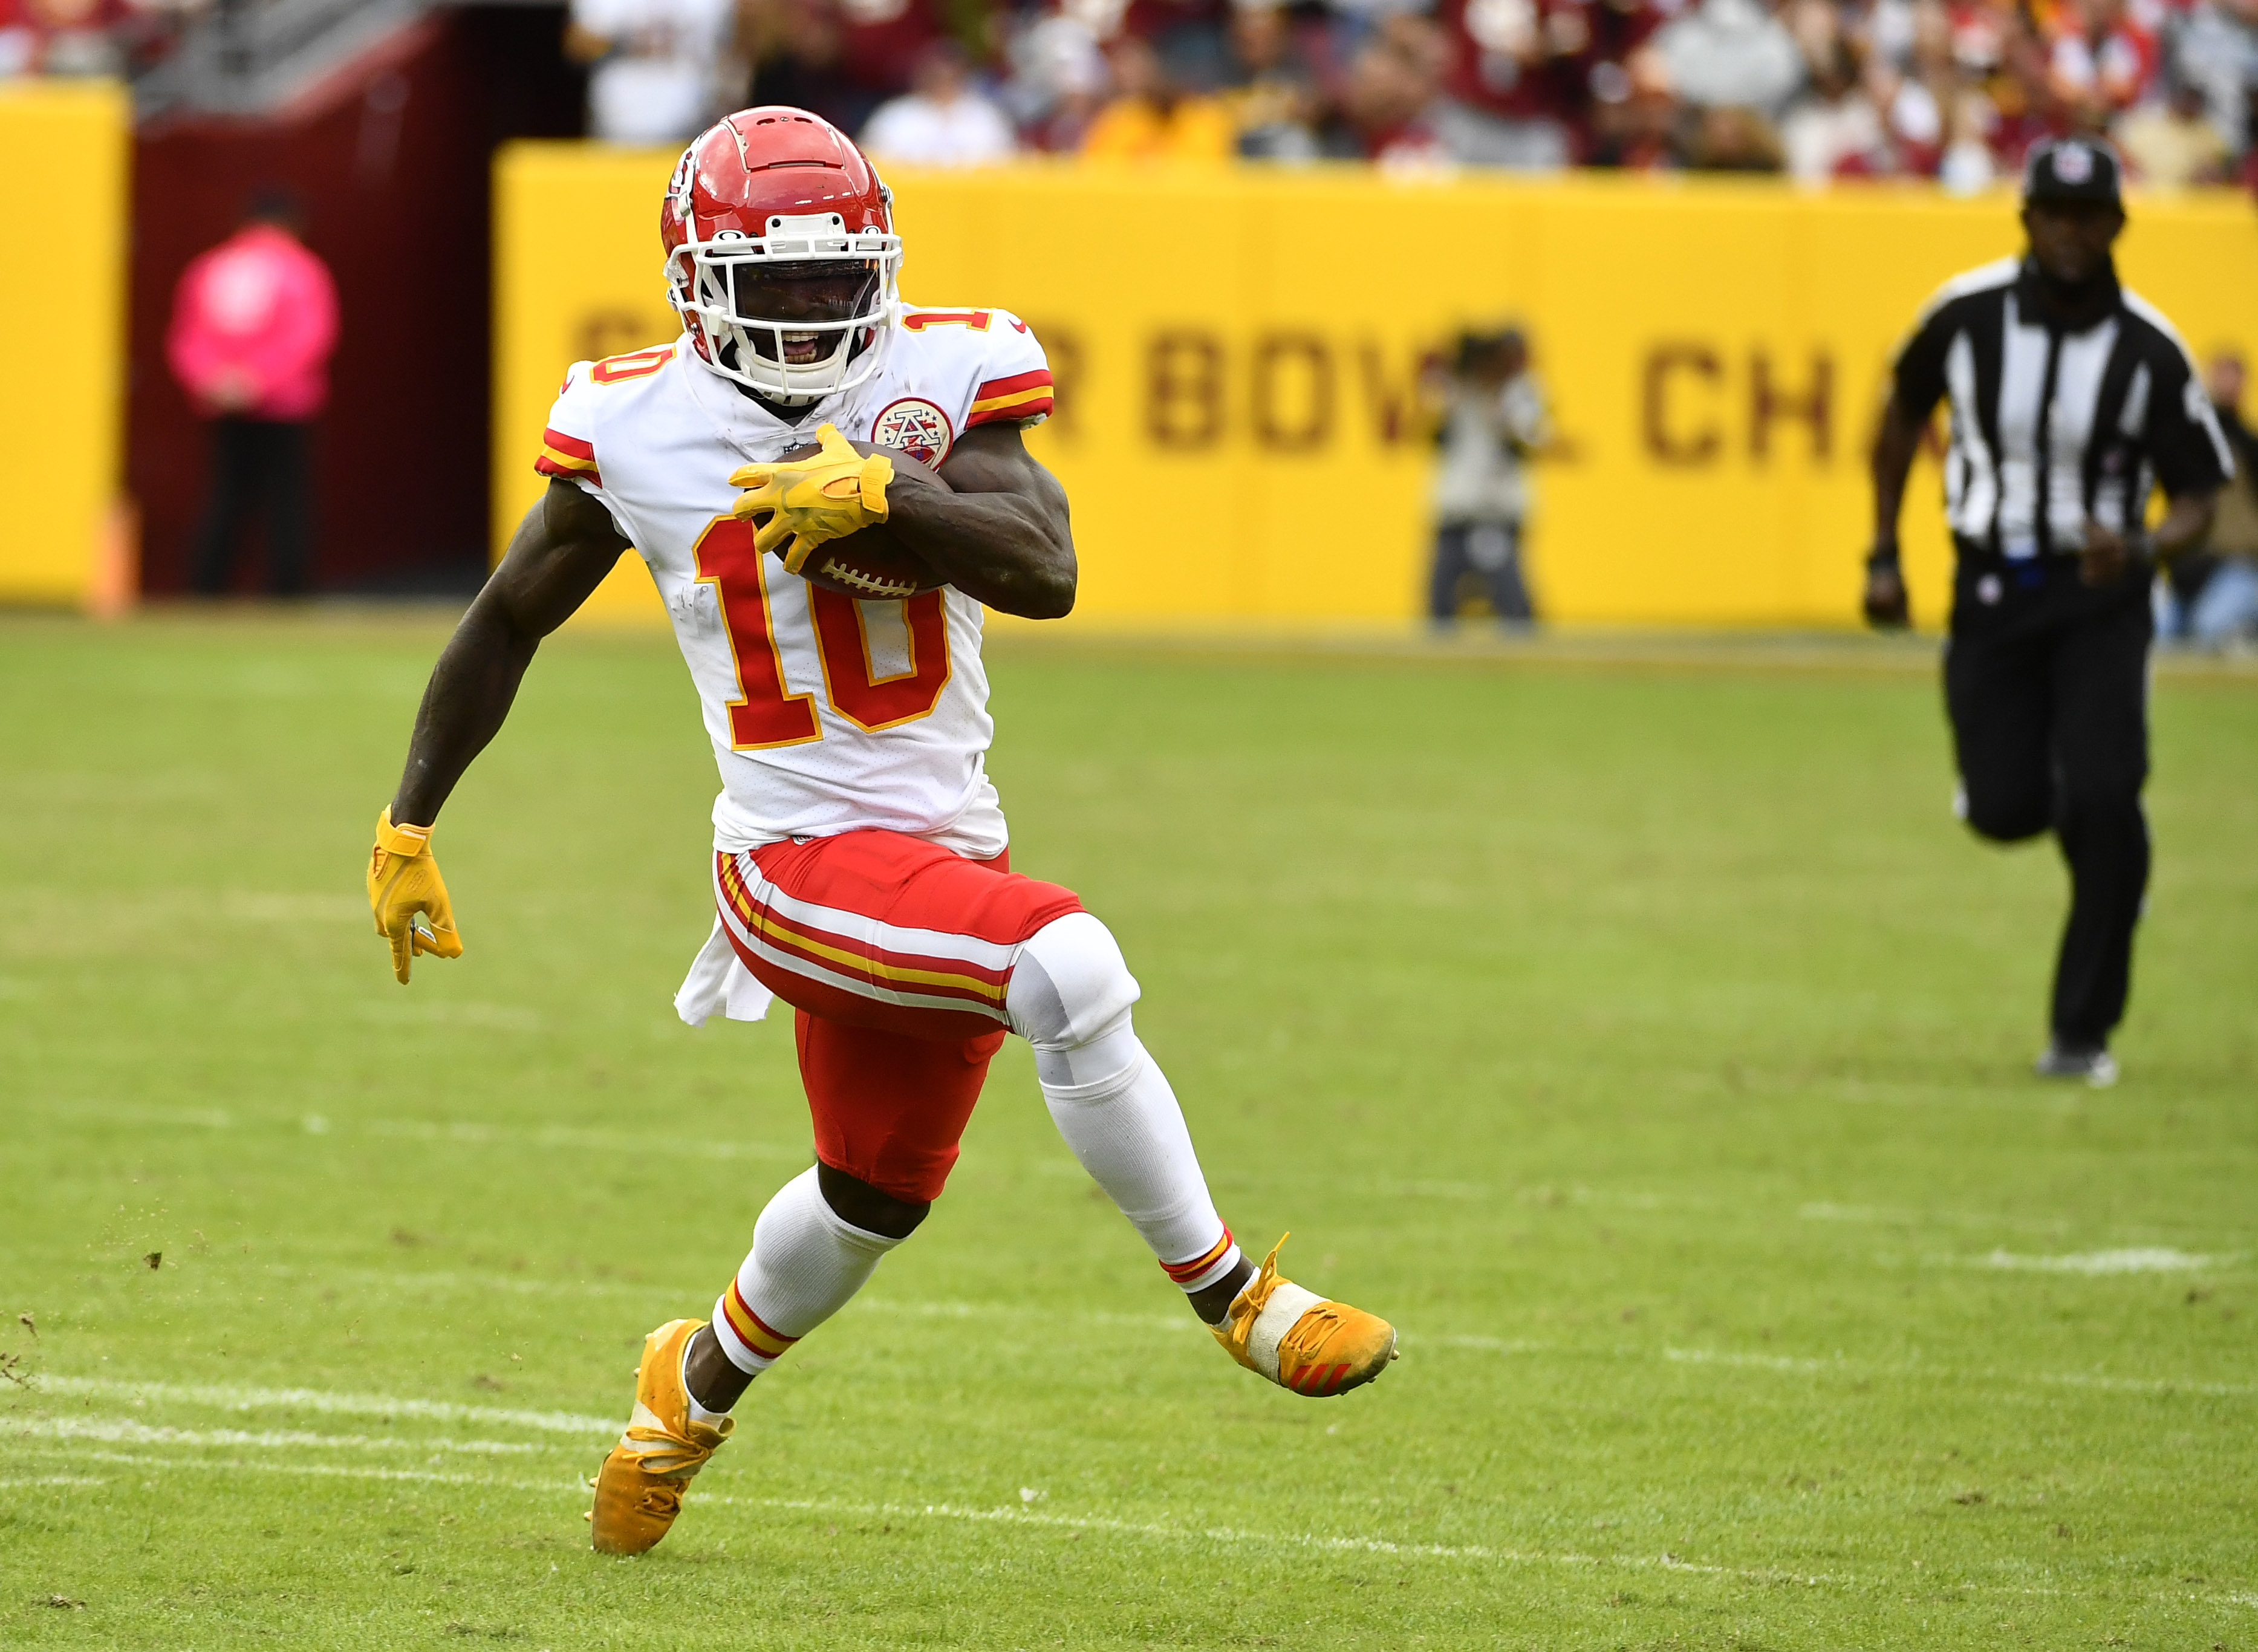 Kansas City Chiefs wide receiver Tyreek Hill (10) runs after a catch against the Washington Football Team during the second half at FedExField.